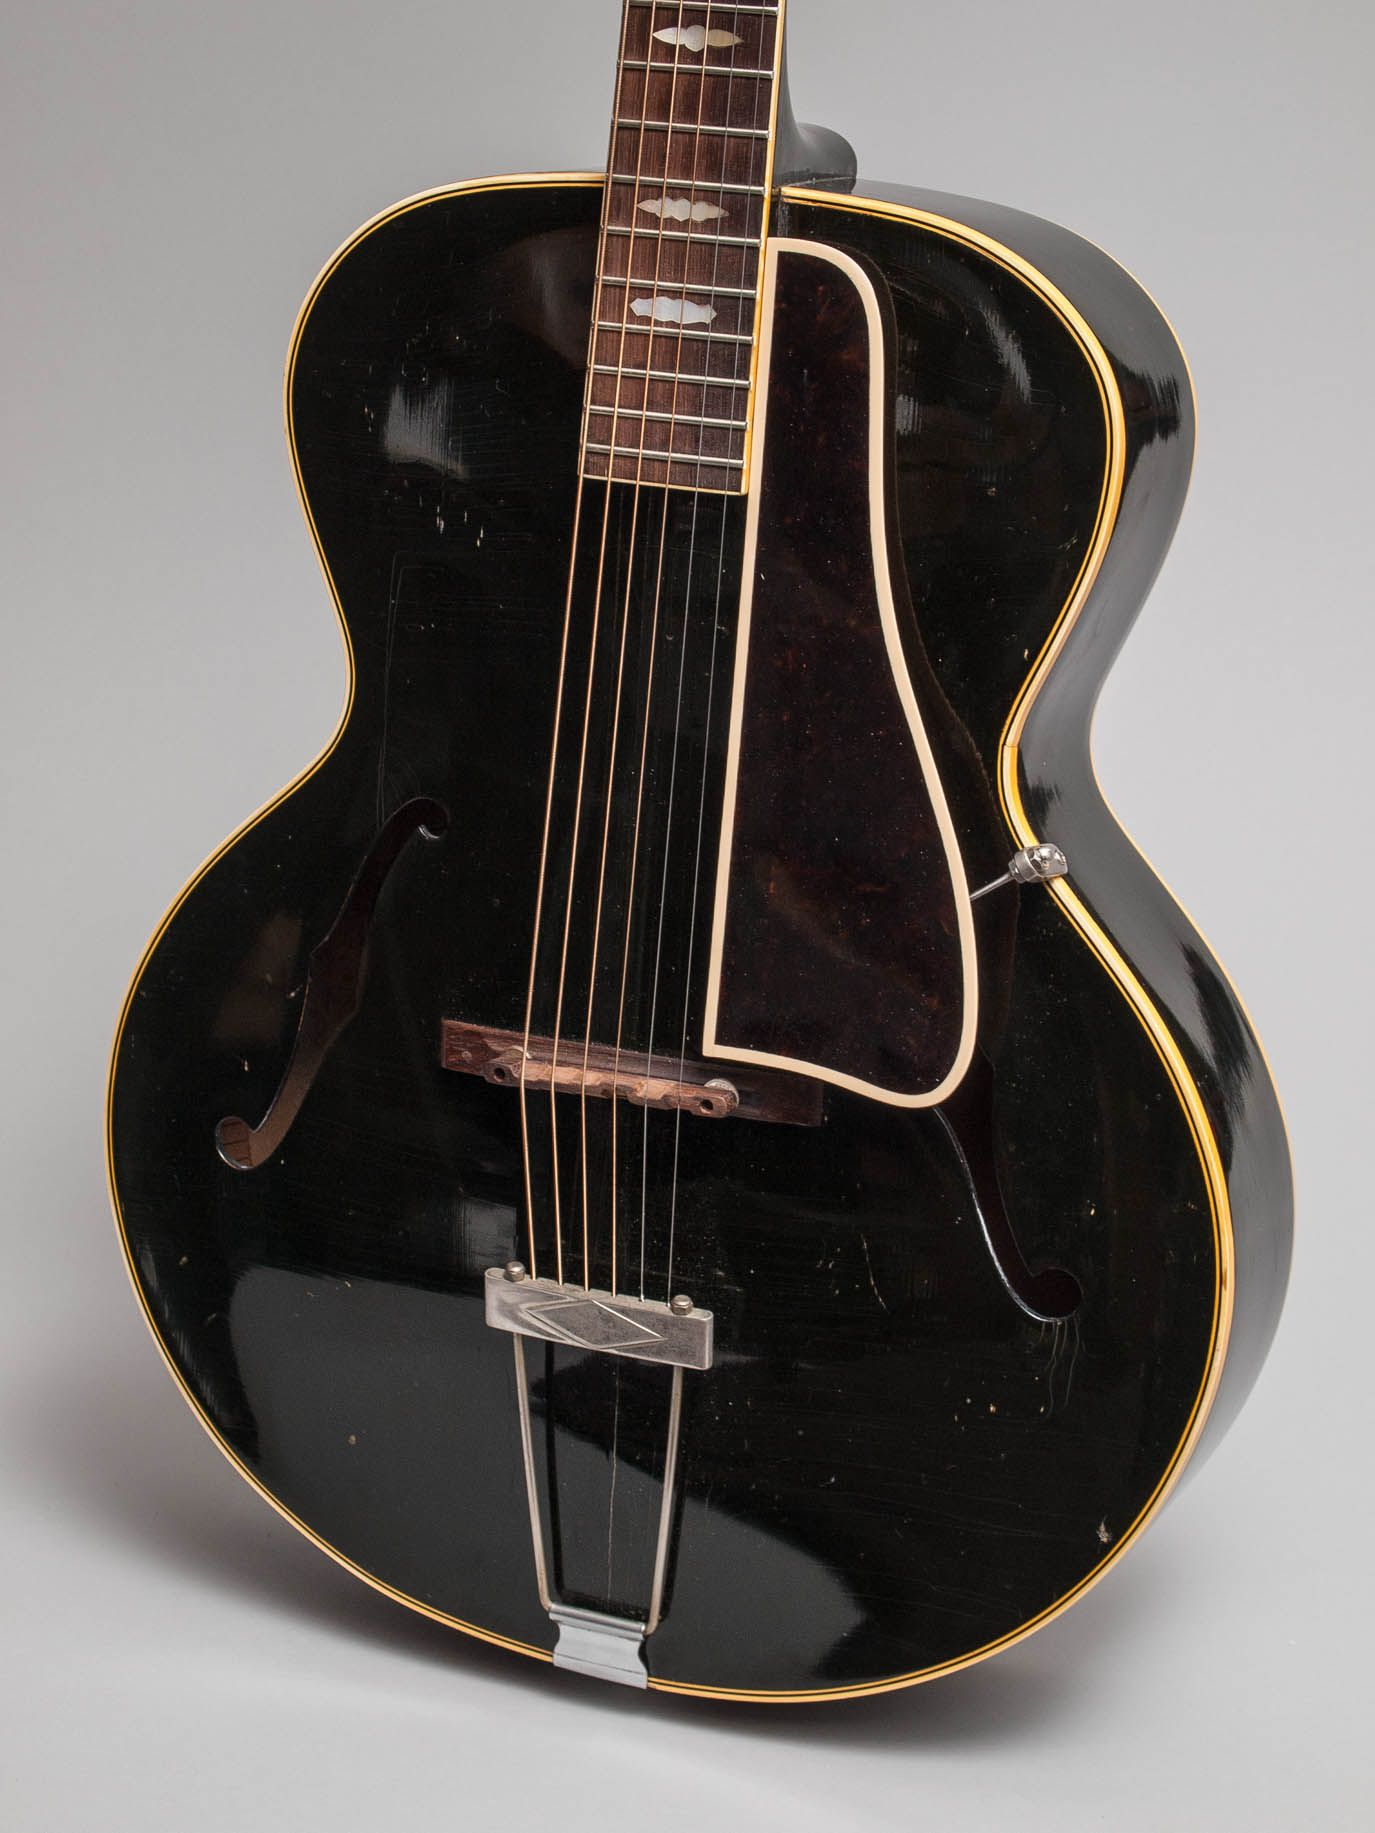 1946 gibson l 4 black in excellent condition this is an unusual and very cool guitar we have. Black Bedroom Furniture Sets. Home Design Ideas